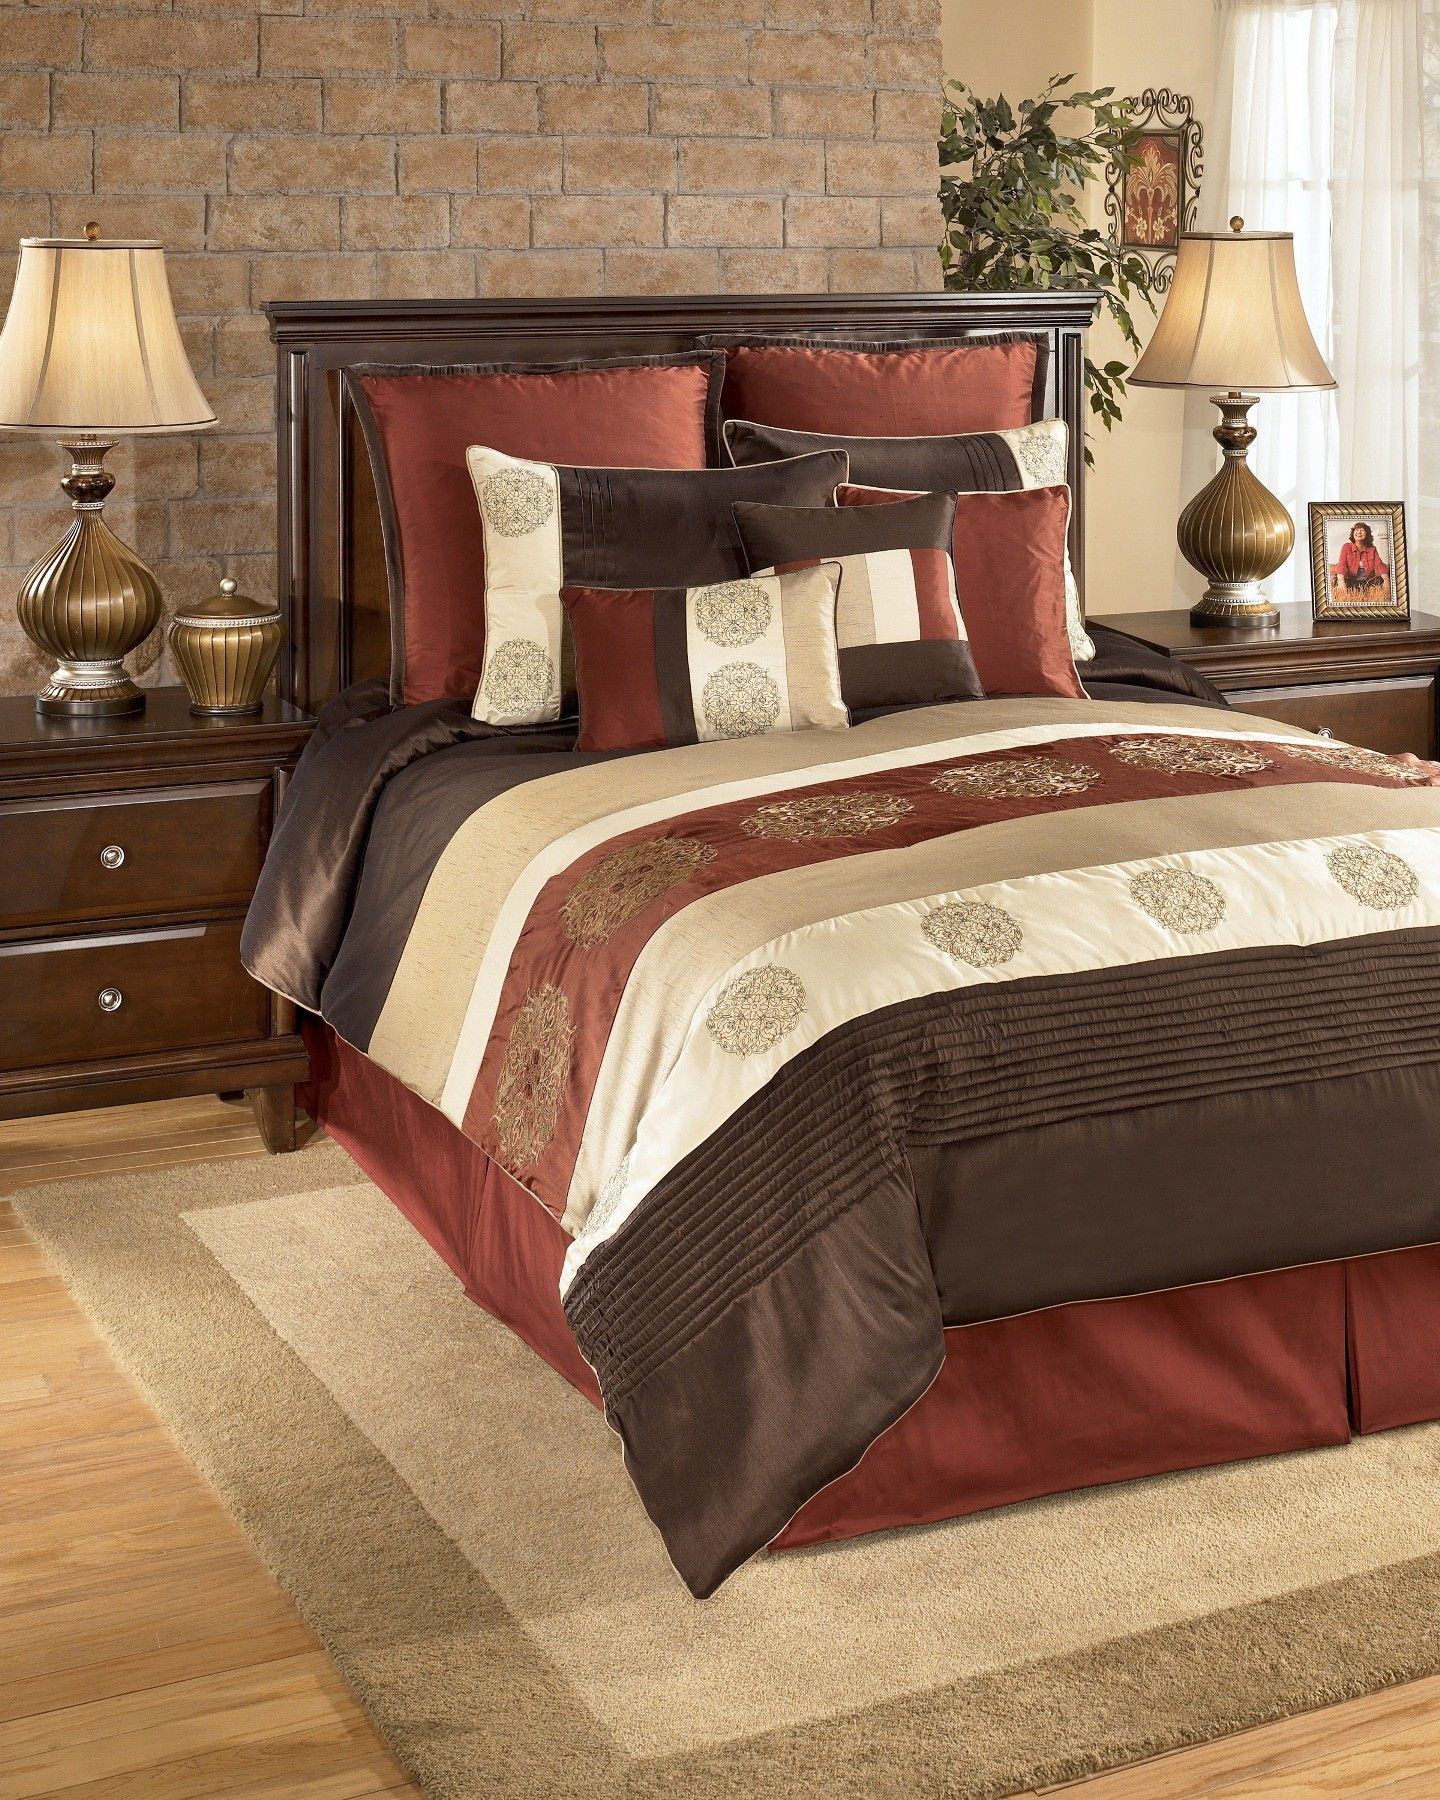 Oversized King Size Bedding 126x120 Milano Russett Set Q175007k Ashley Furniture